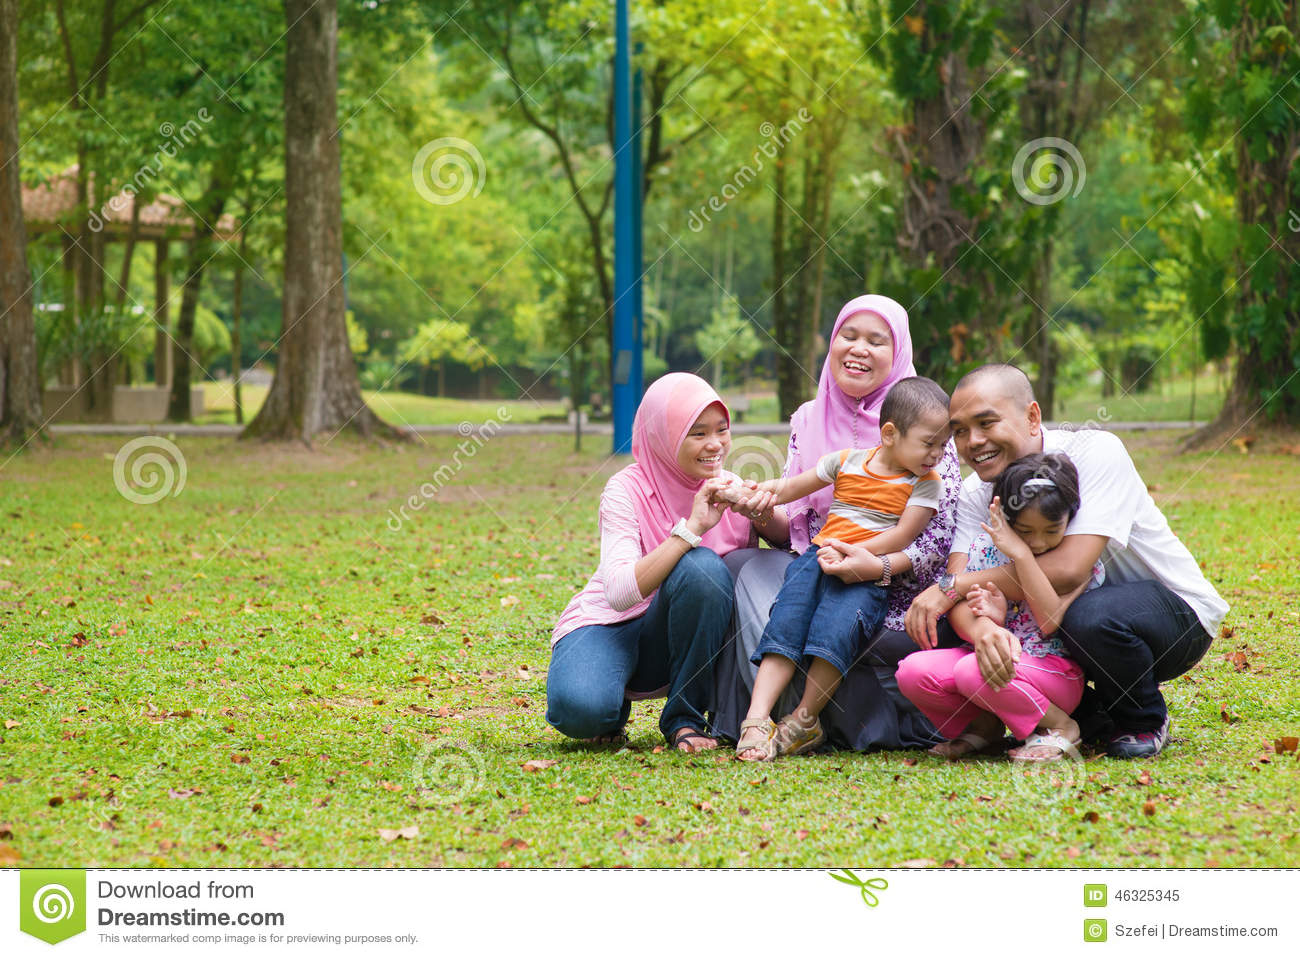 Fun Outdoor Living : Asian Muslim Family Lifestyle Stock Photo - Image: 46325345